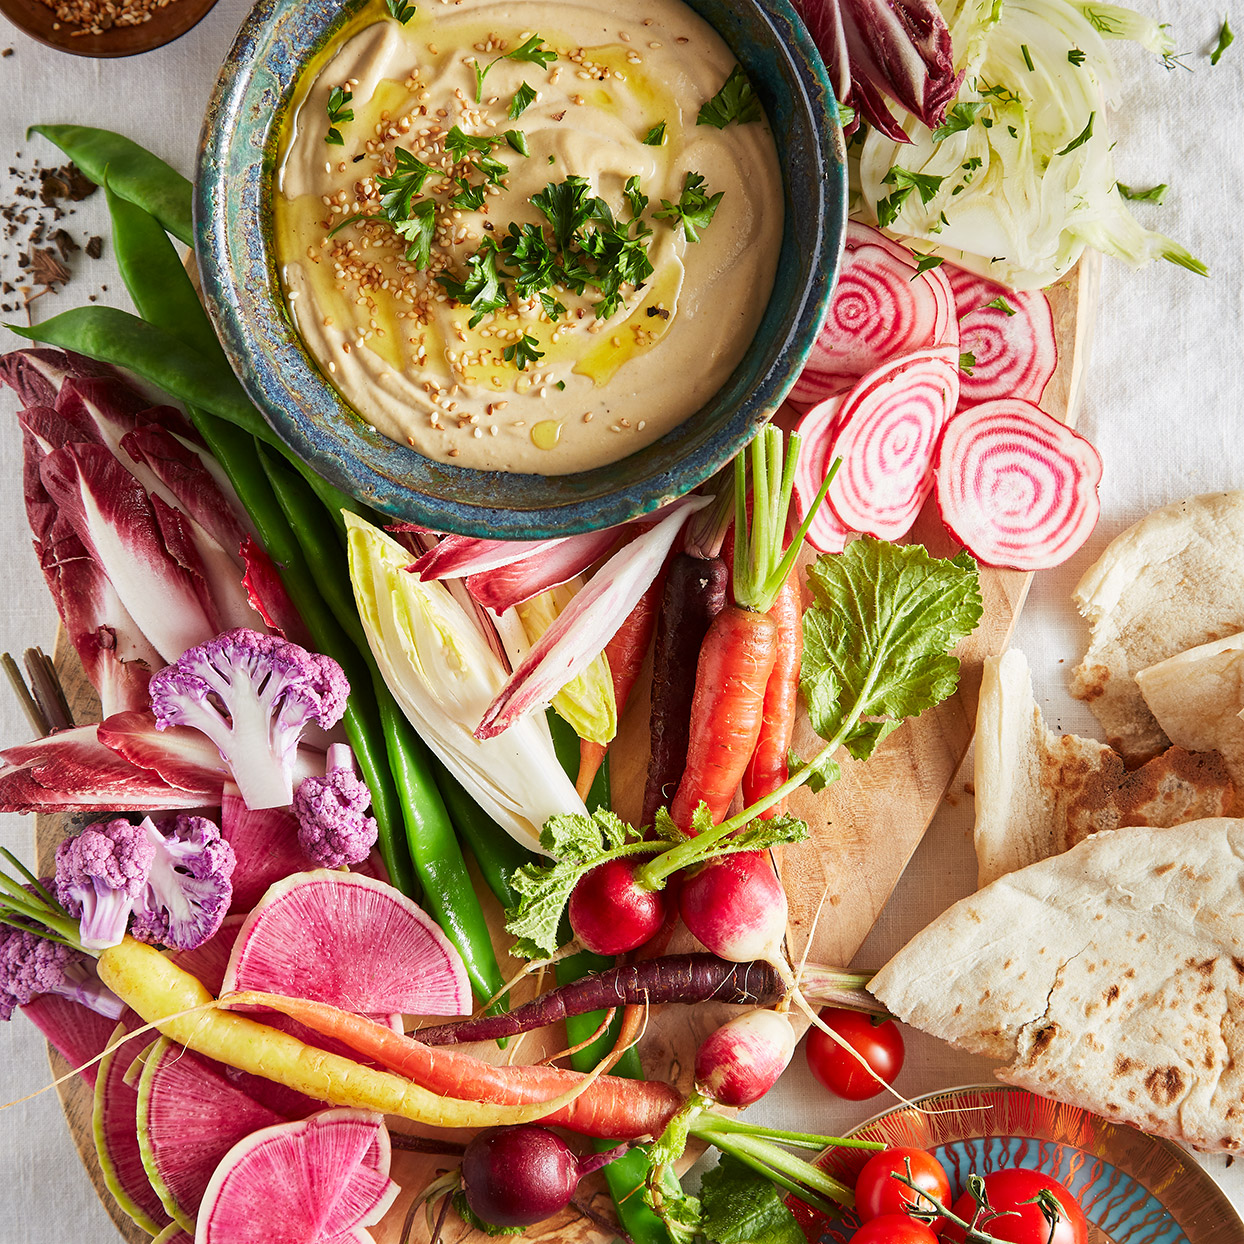 Super creamy with the nutty flavor of sesame seeds, this homemade tahini sauce recipe is a popular way to begin a meal in Cyprus. Serve with crudités and pita.